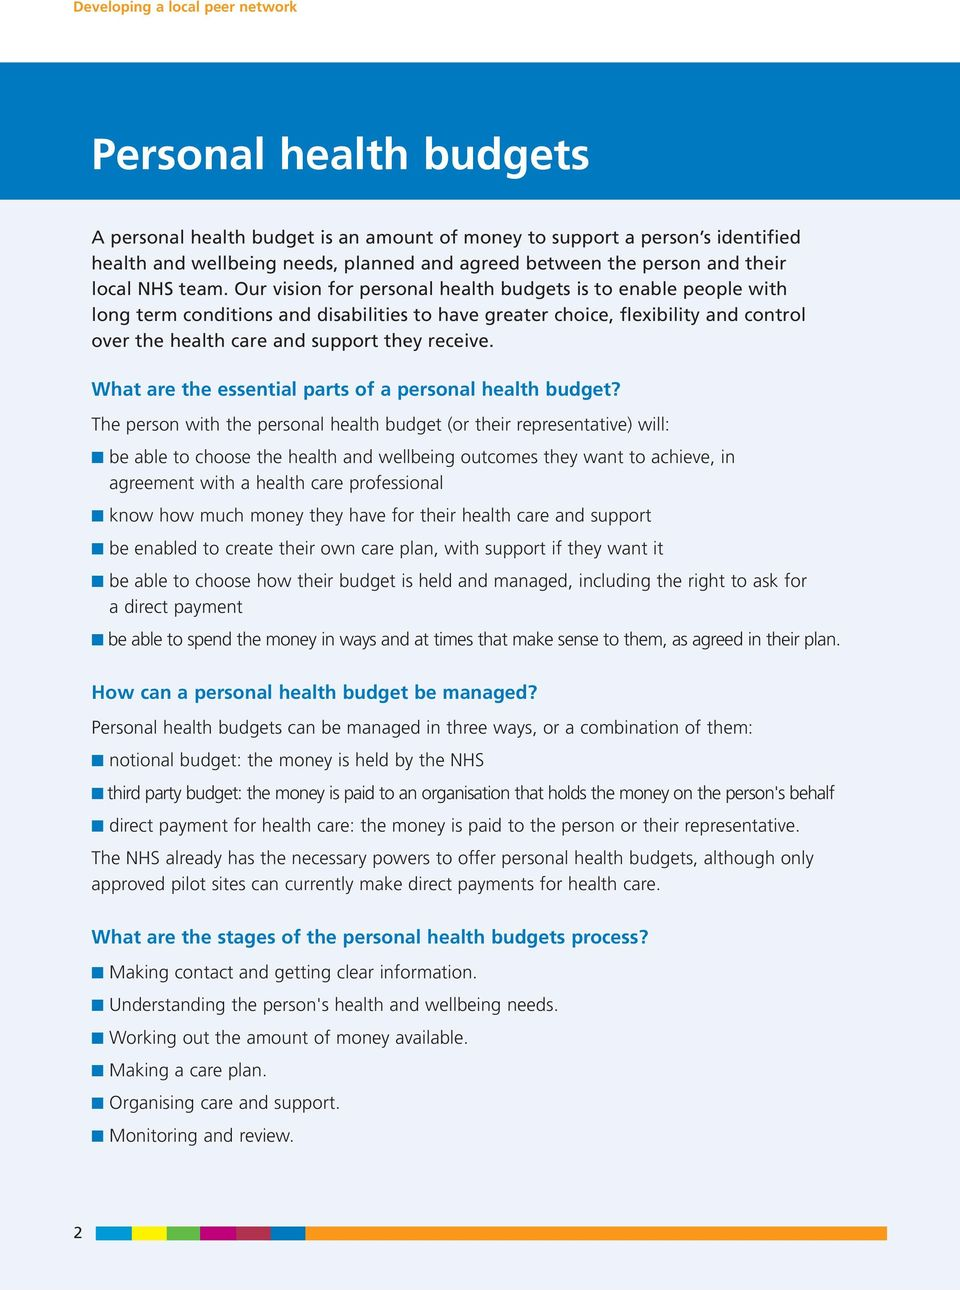 What are the essential parts of a personal health budget?